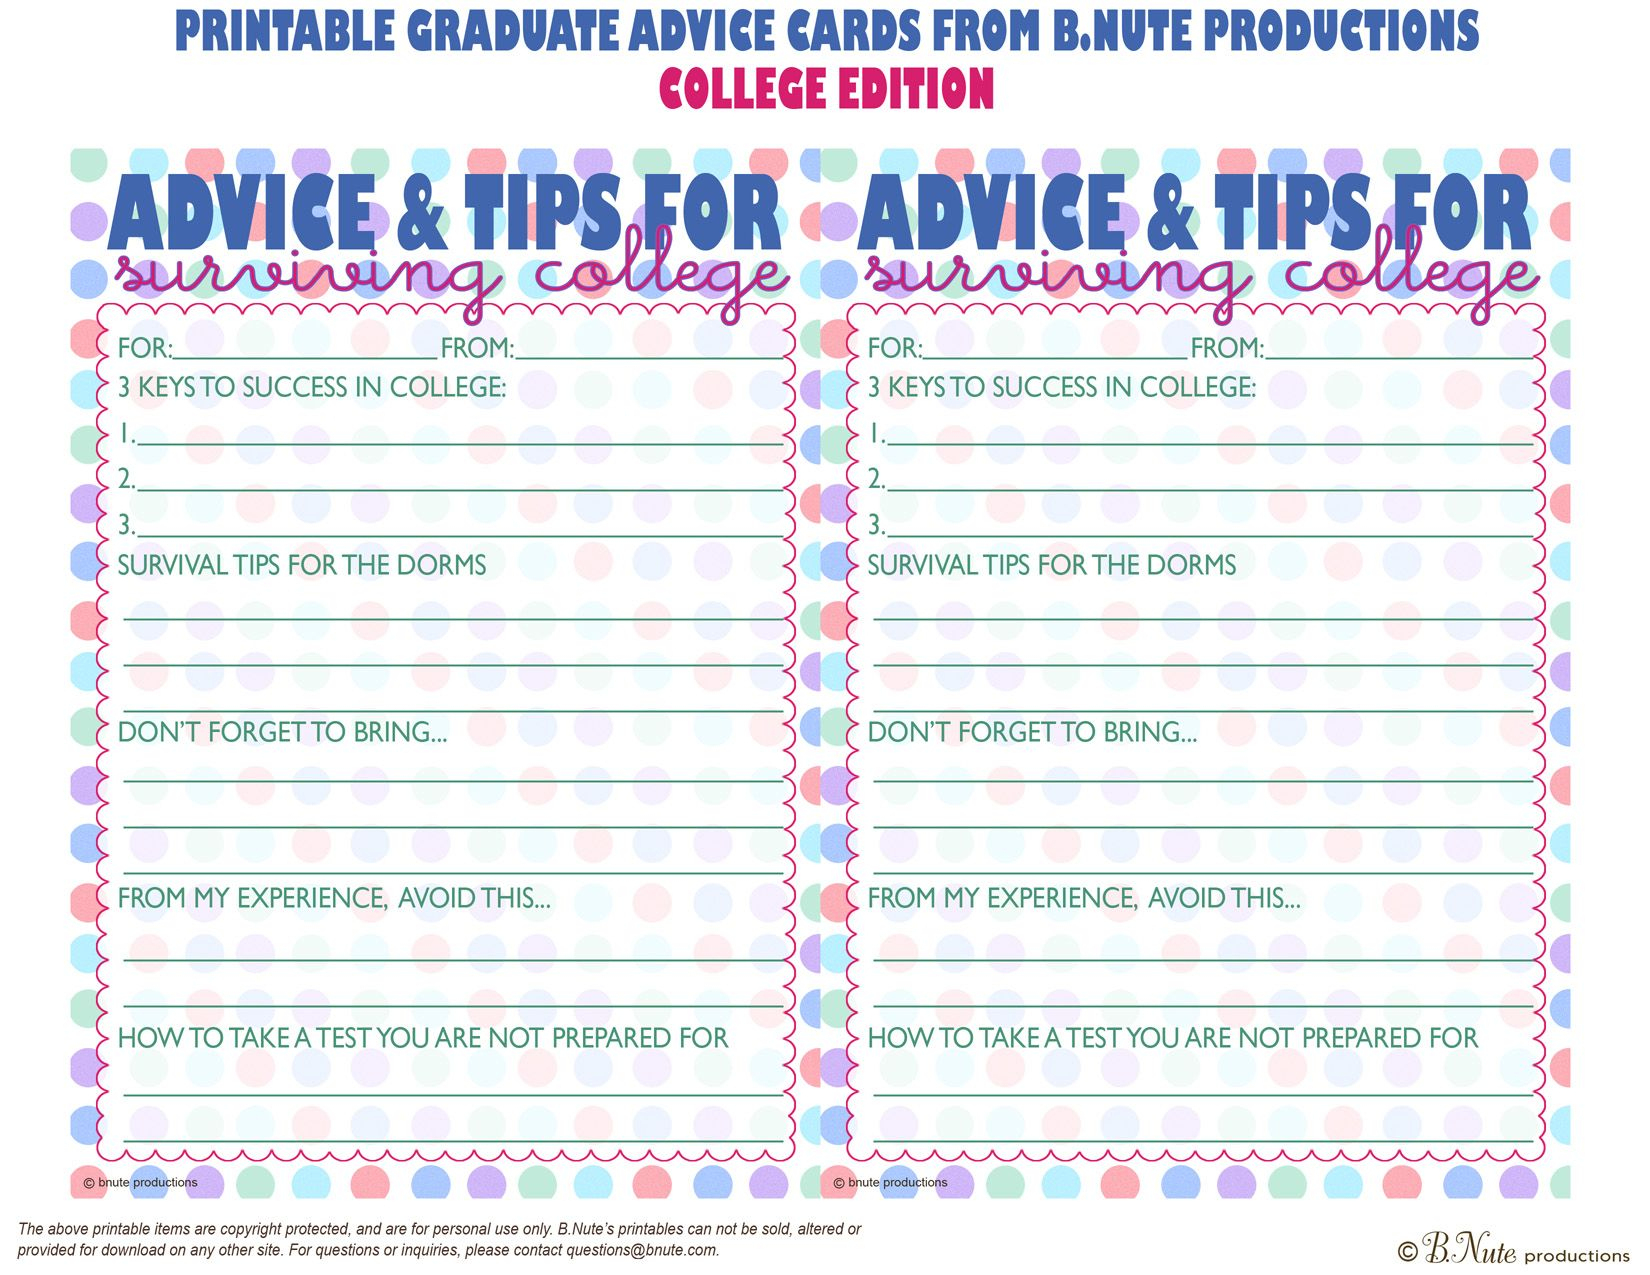 Free Printables | Free Printable Graduate Advice Cards - College - Free Printable Graduation Advice Cards